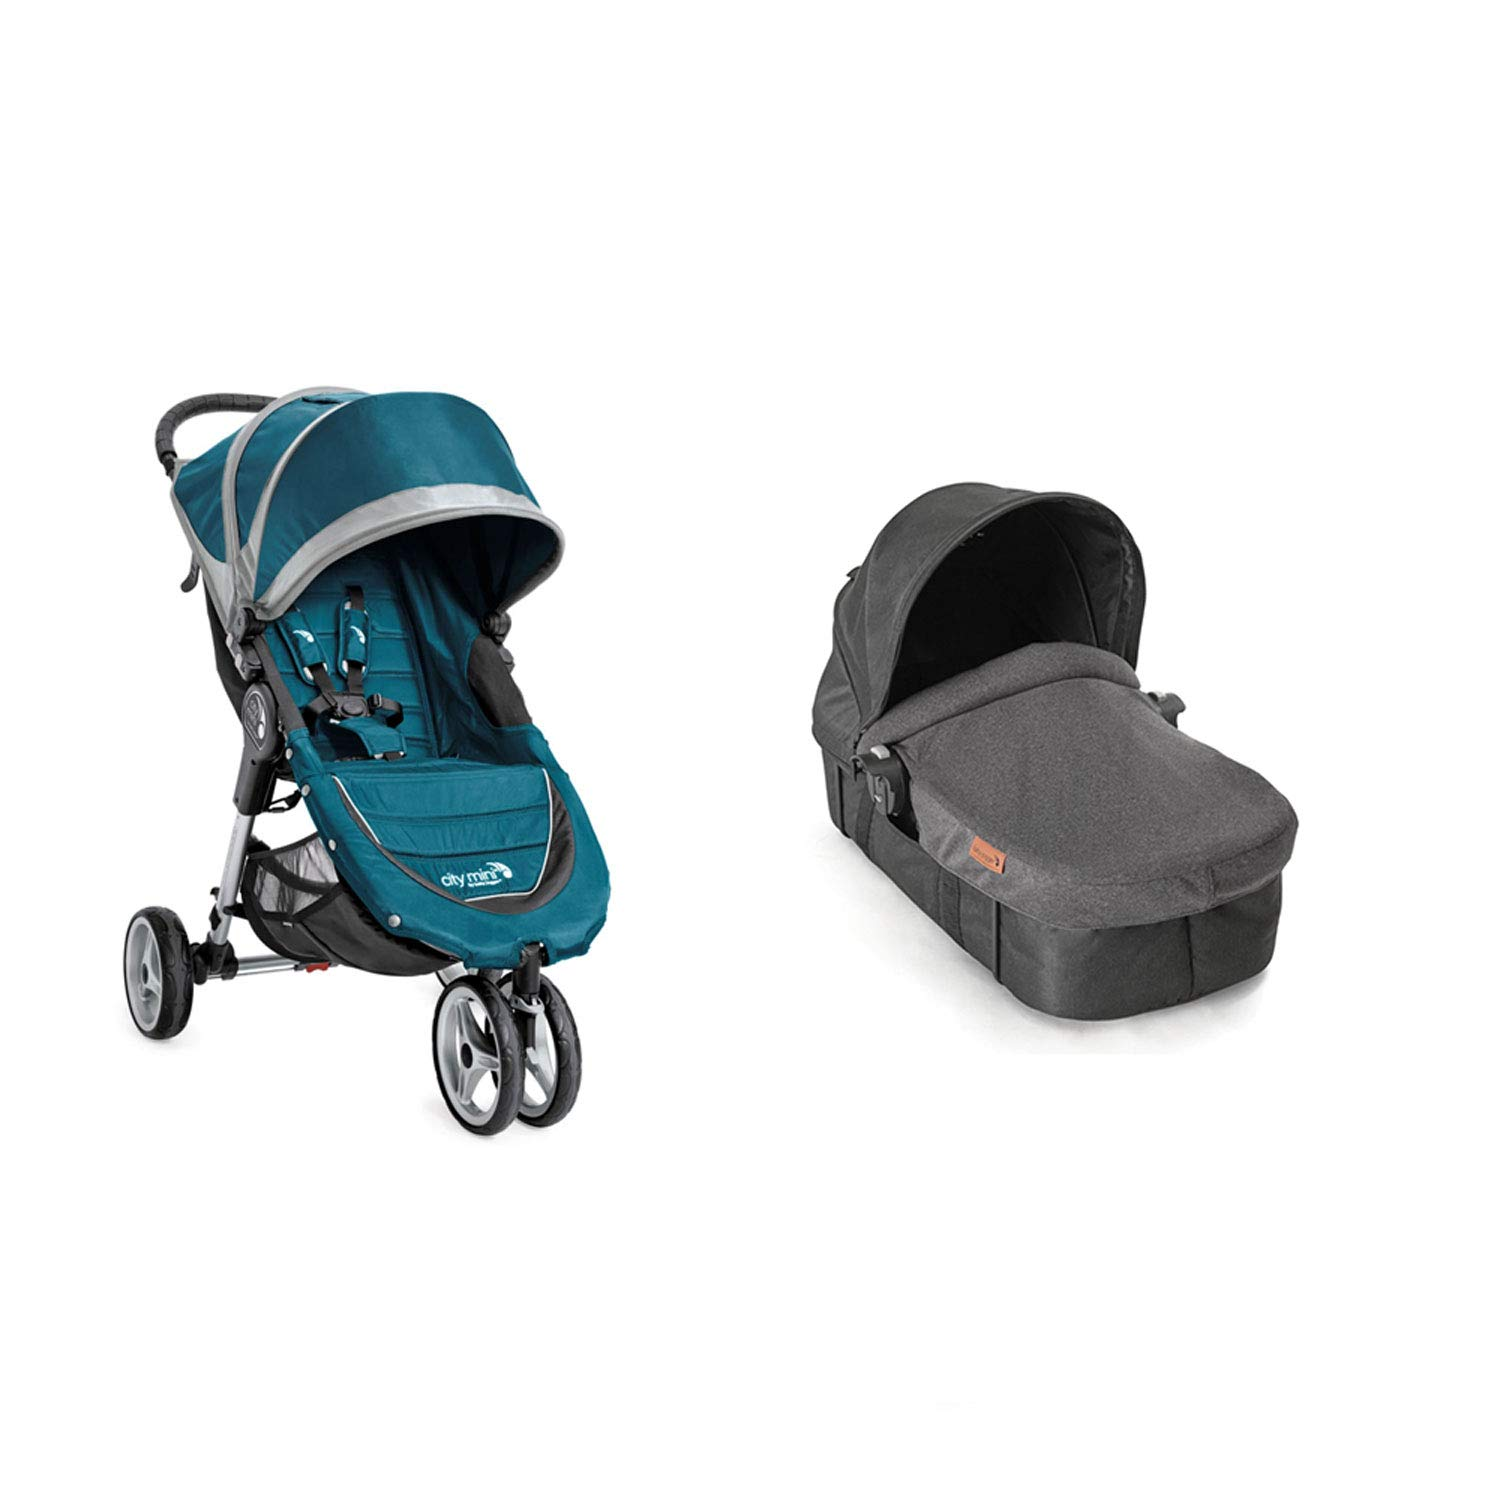 Amazon.com: Baby Jogger City Mini Cochecito compacto de ...